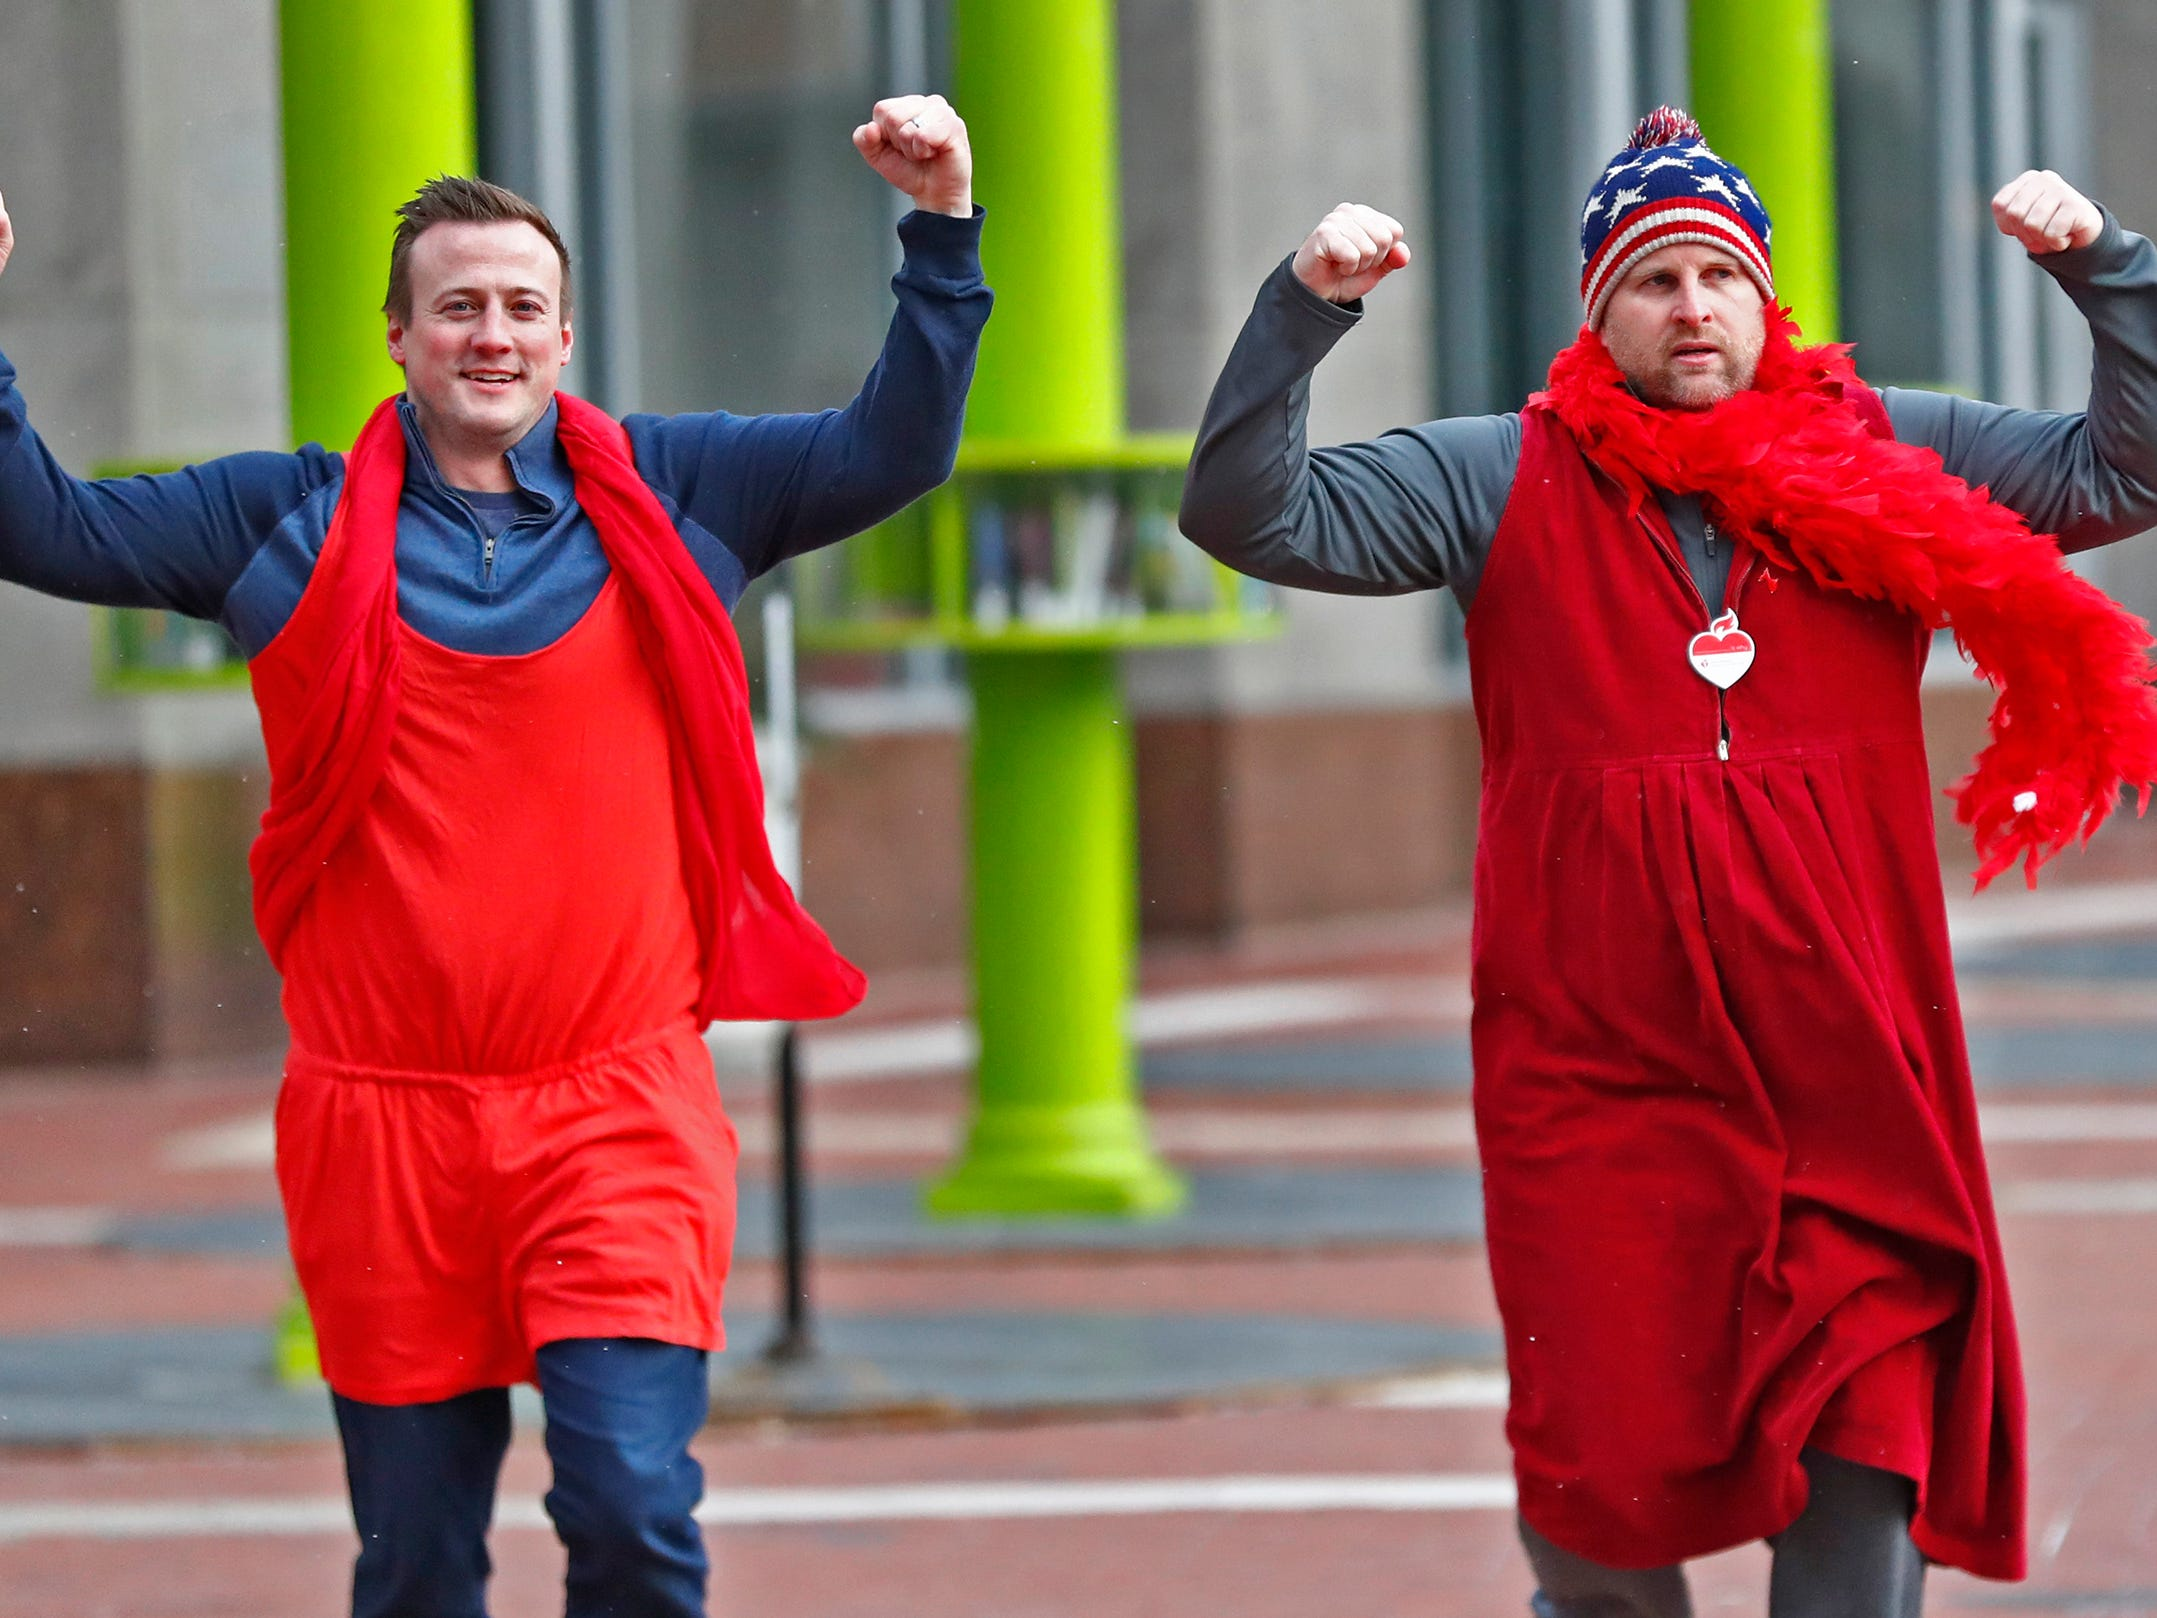 Patrick Triest, left, and Bryan Hohne, with J.D. Byrider, wear red as they dash around Monument Circle for the Red Dress Dash, Friday, Feb. 8, 2019.  The American Heart Association put on the seventh annual event to support women's heart health.  The event raises awareness for the American Heart Association's Go Red For Women movement.  Heart disease is the leading cause of death among women.